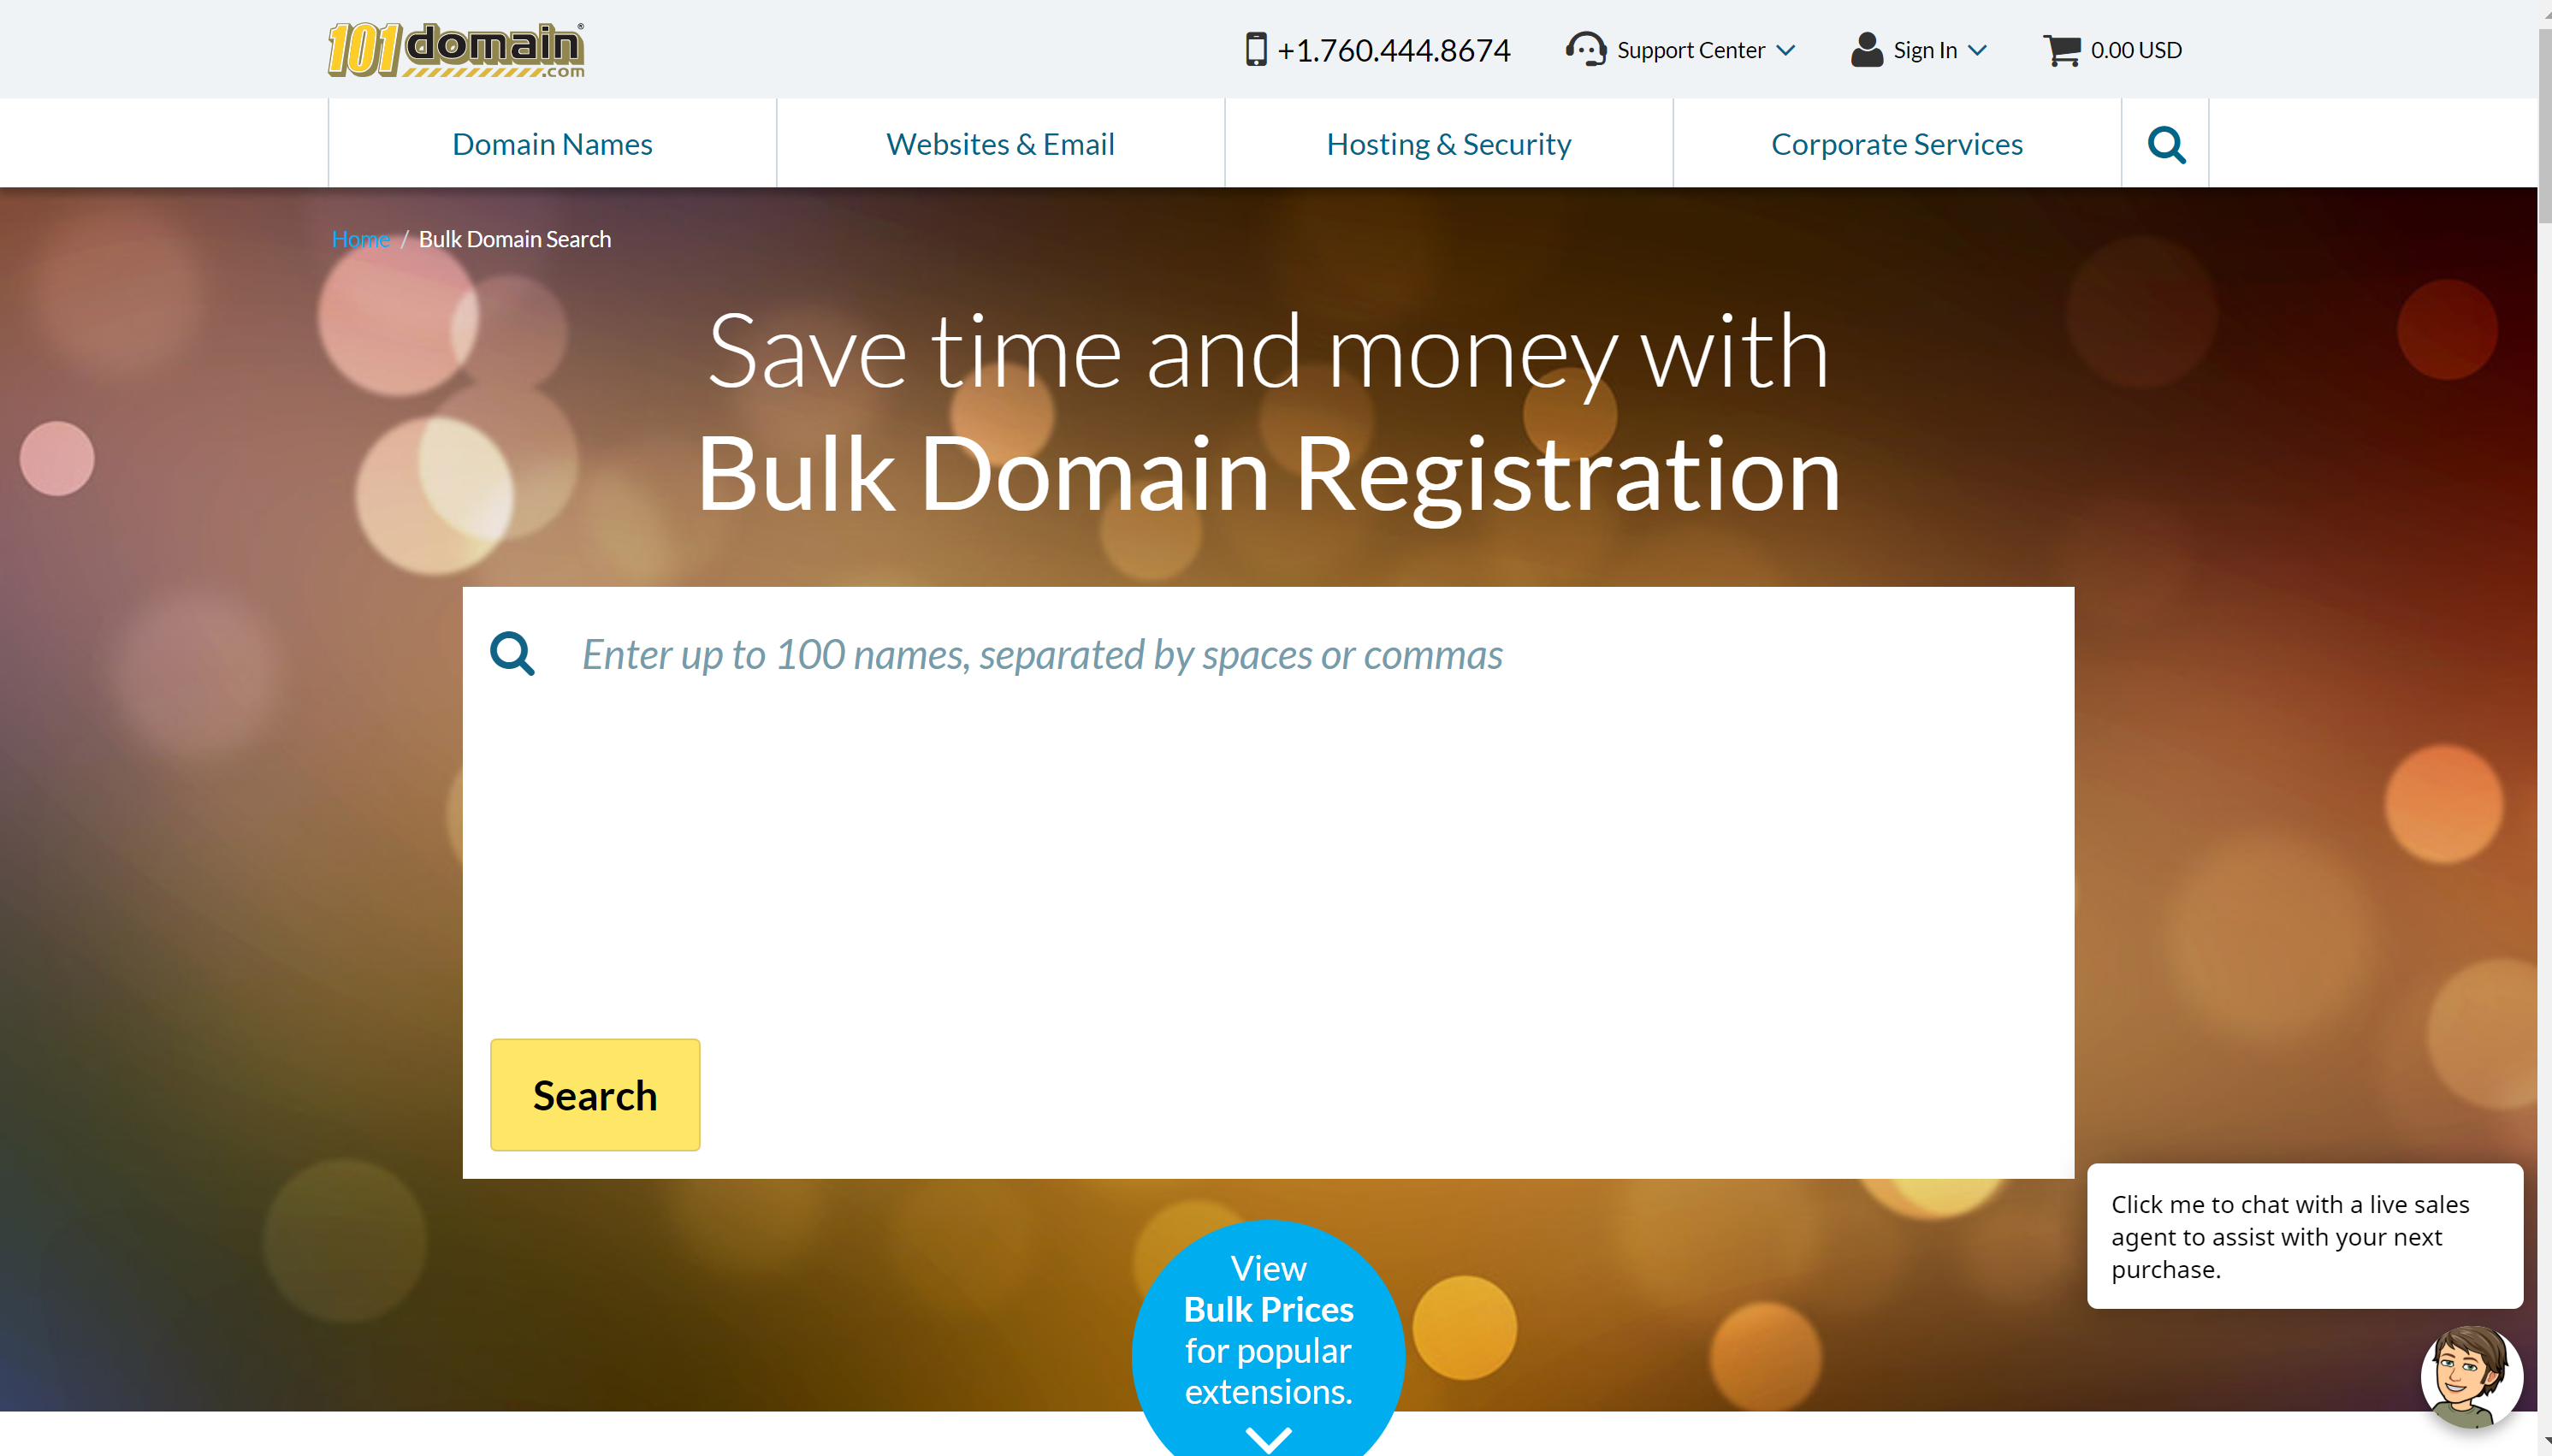 101domain website review